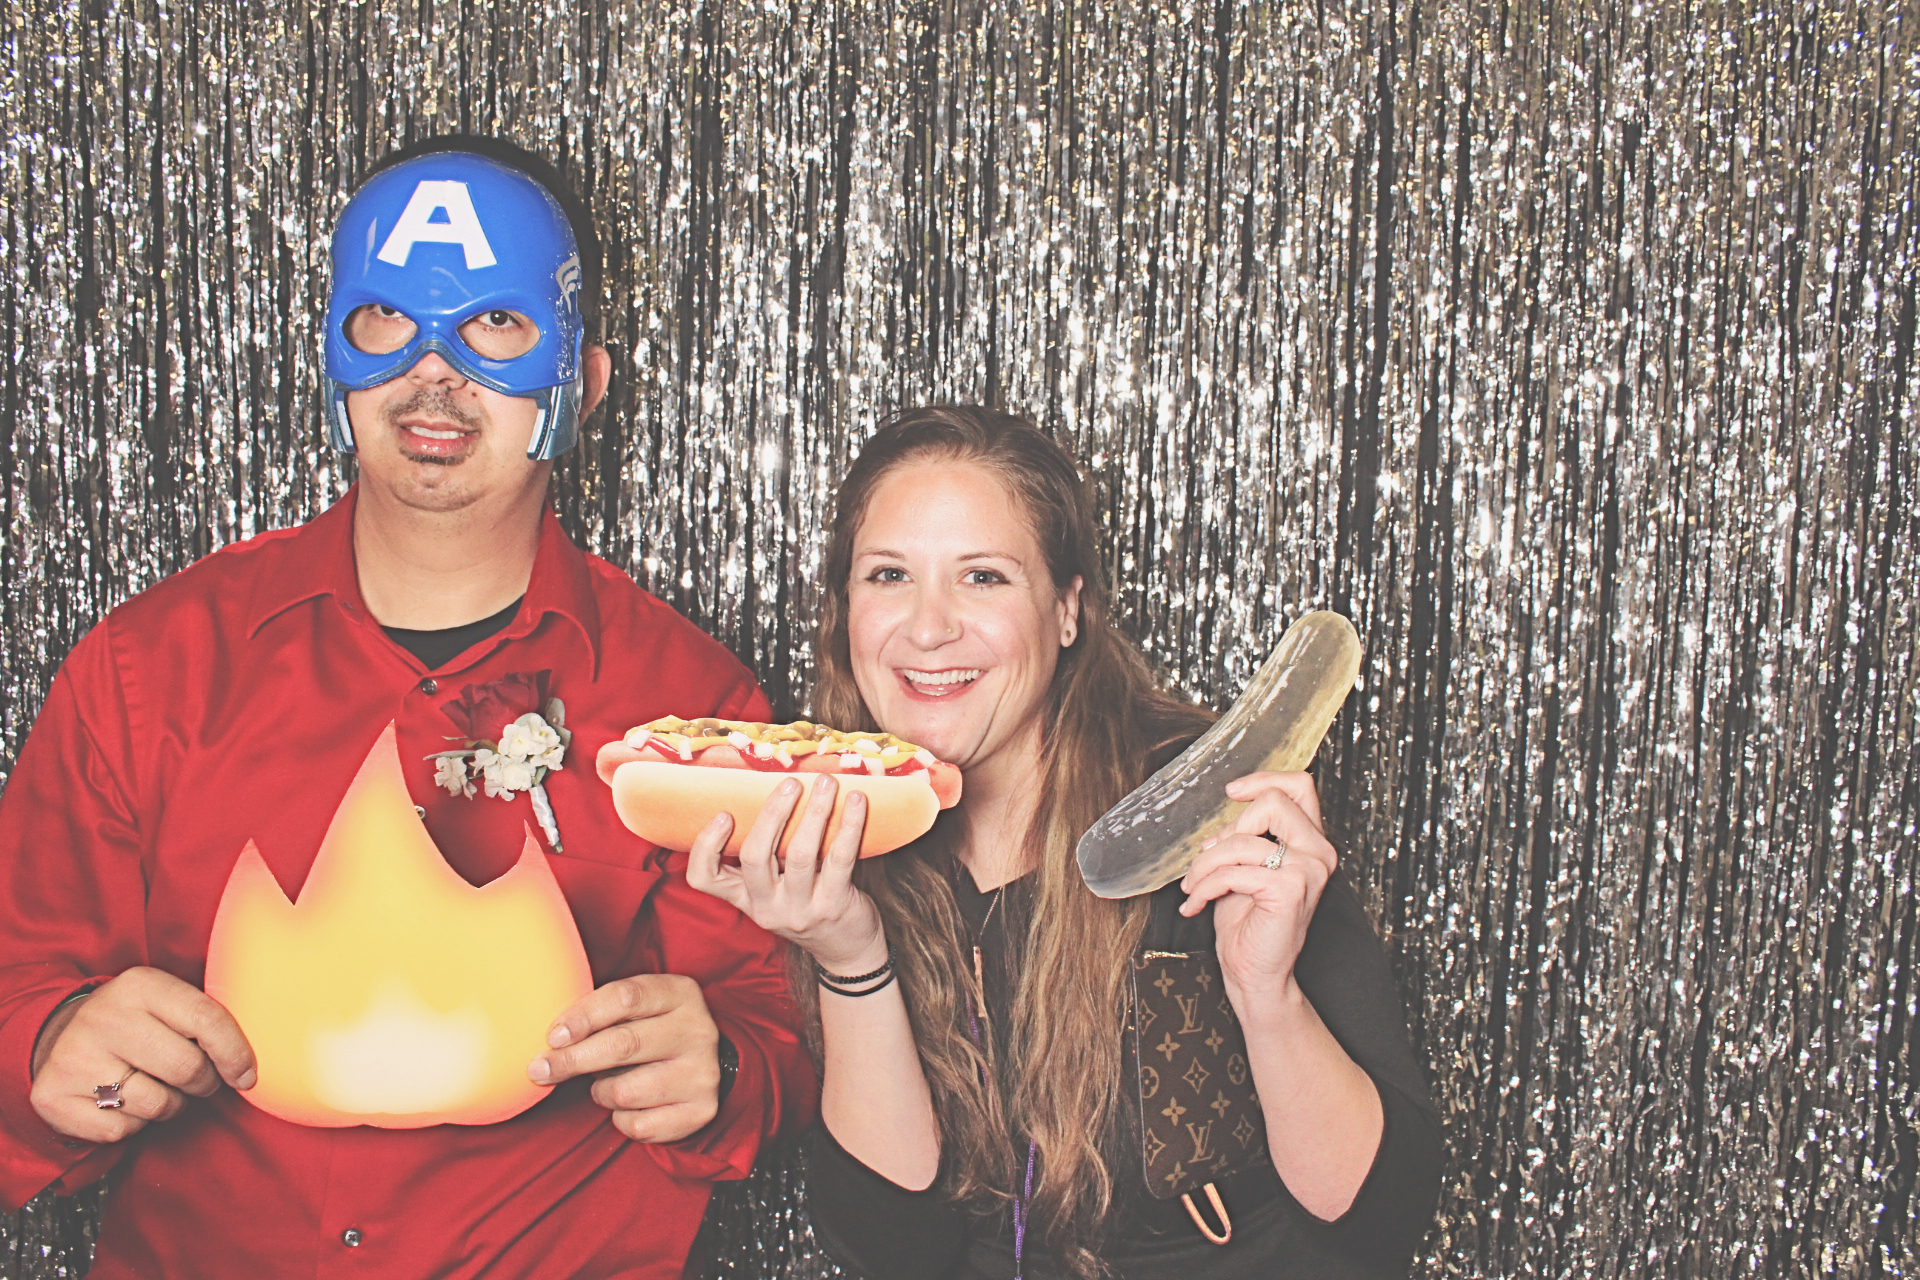 2-8-19 Atlanta Southcrest Church Photo Booth - Night to Shine Coweta 2019 - Robot Booth060.jpg